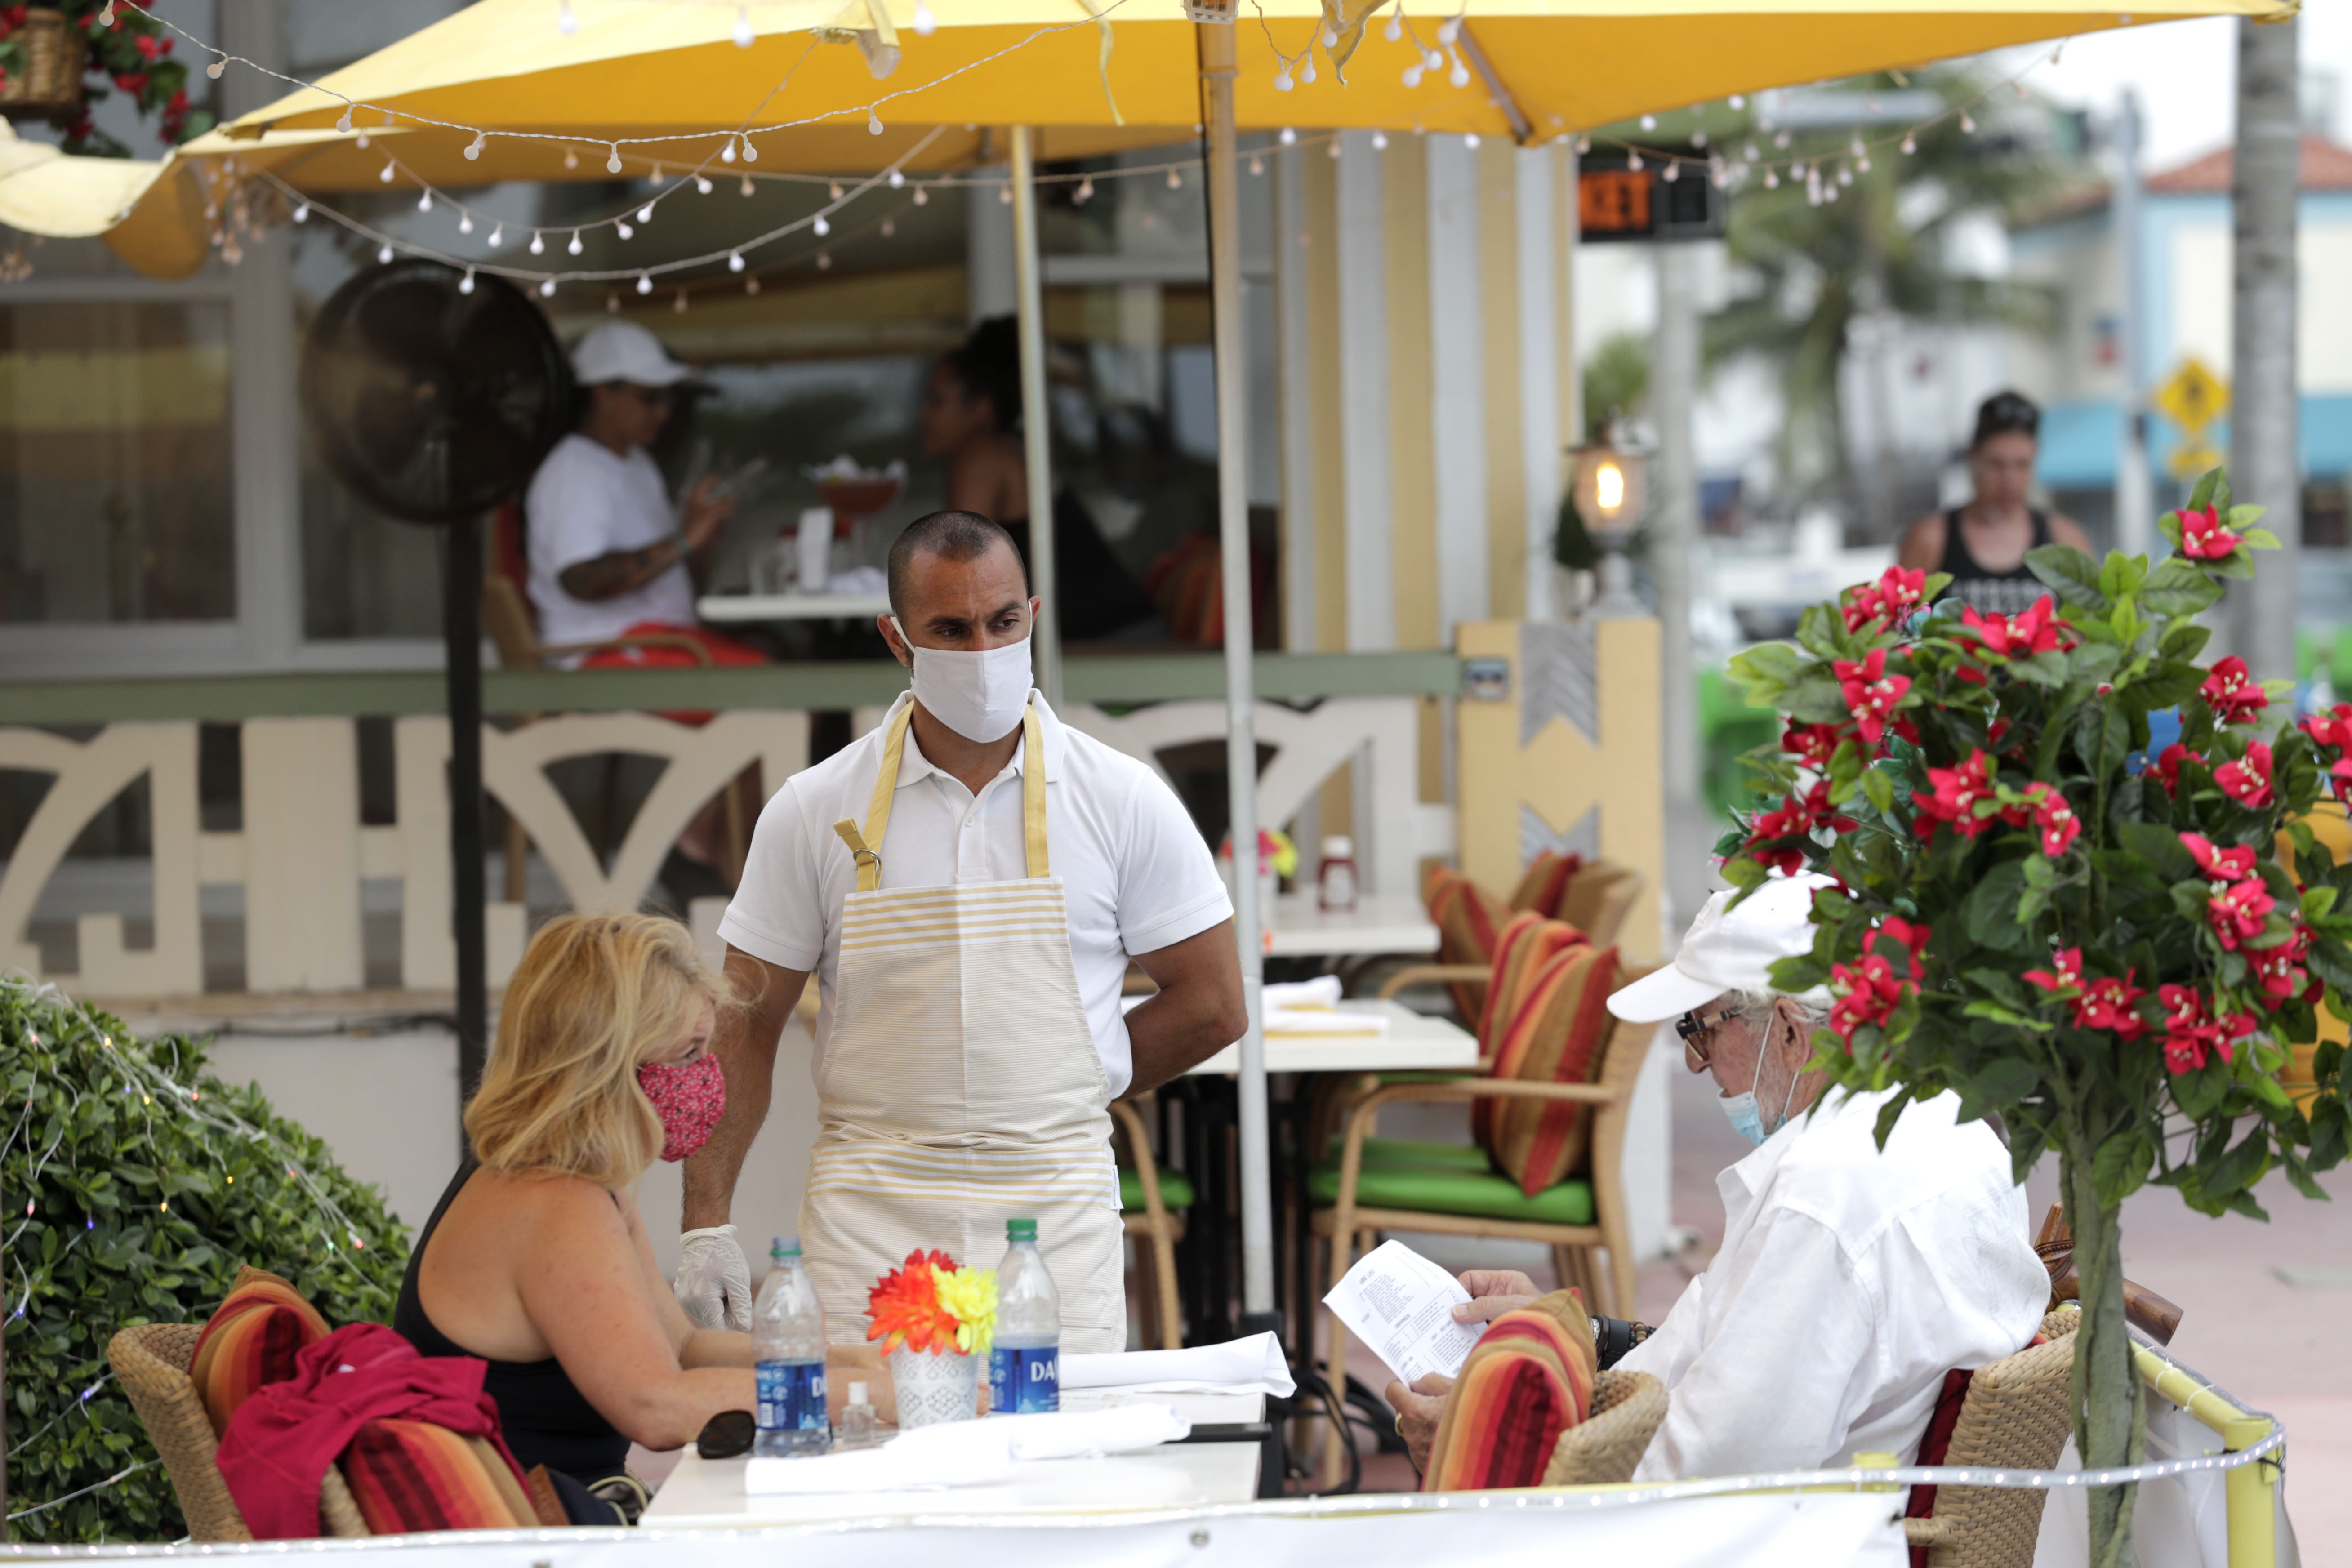 People order at a restaurant in Miami Beach, Florida, on May 27.